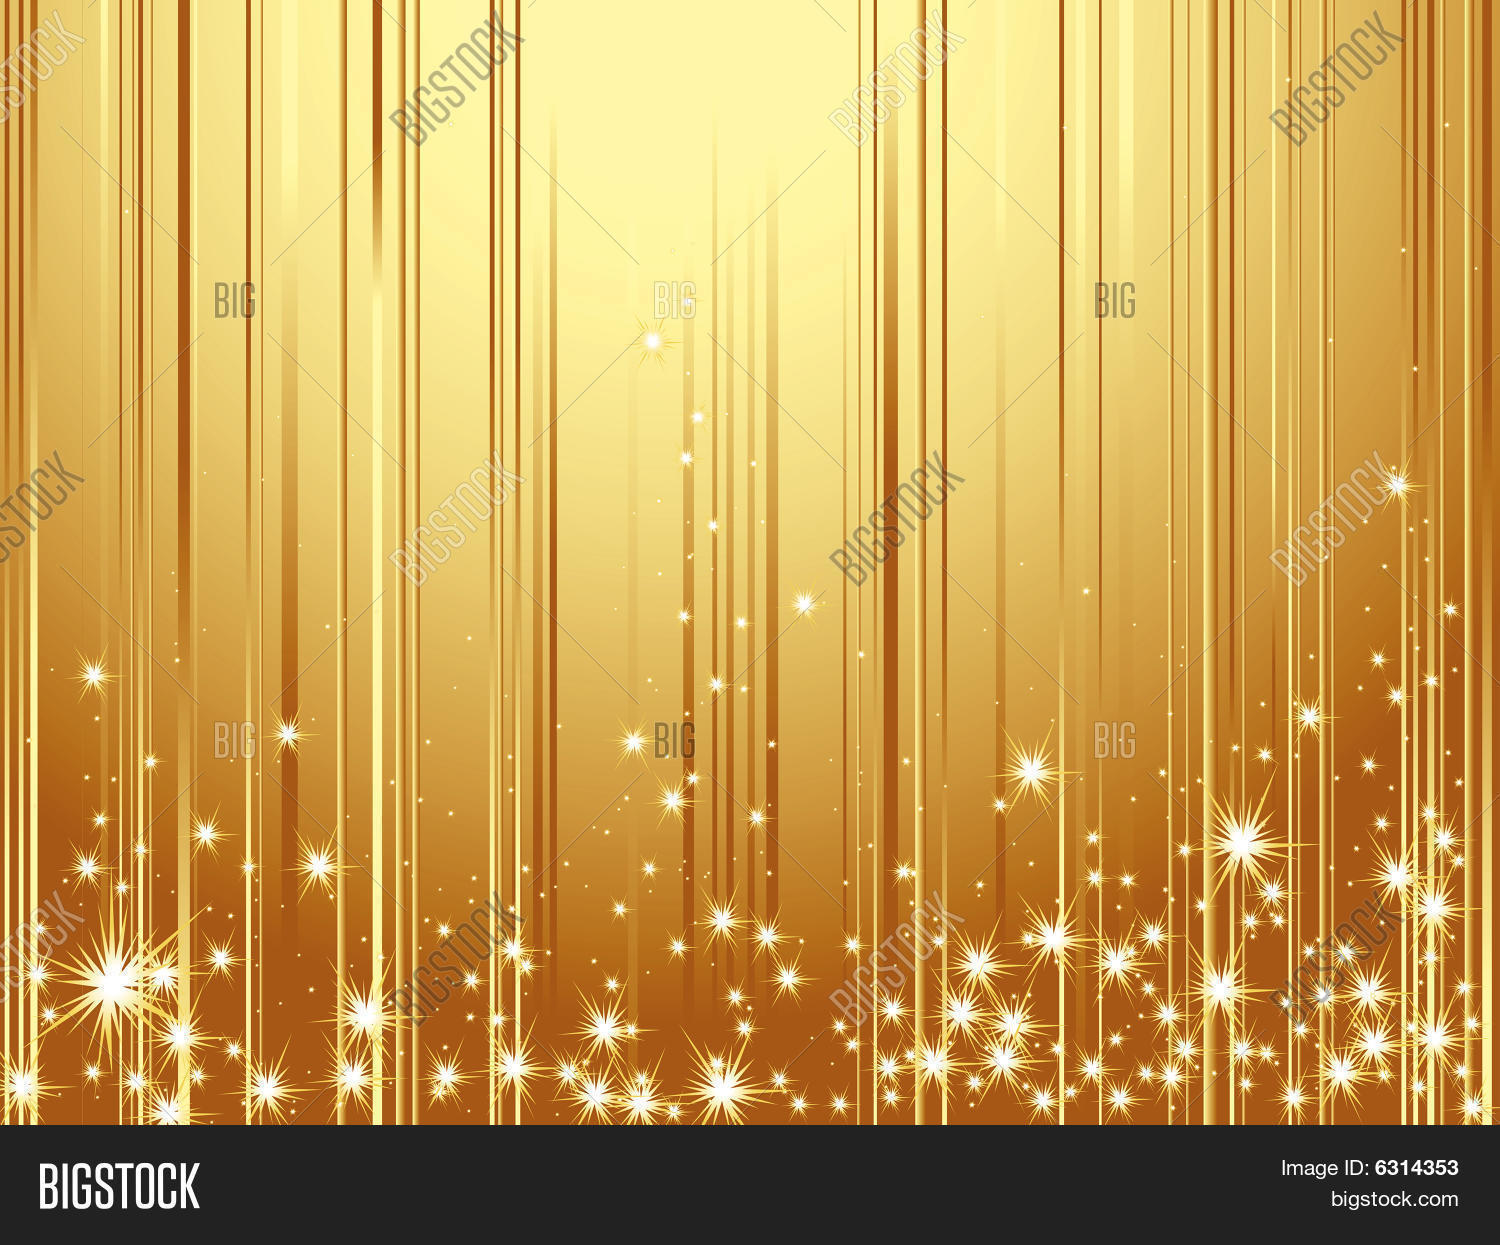 2011,abstract,background,blue,christmas,cold,december,decoration,frost,frozen,gift,glow,gold,gold background,gradient,green,happy,happy new year,holiday,ice,illustration,january,light,line,new,new year,new year background,new years,radiance,red,season,shadow,silver,silver background,snow,snowflake,star,tree,vector,winter,year